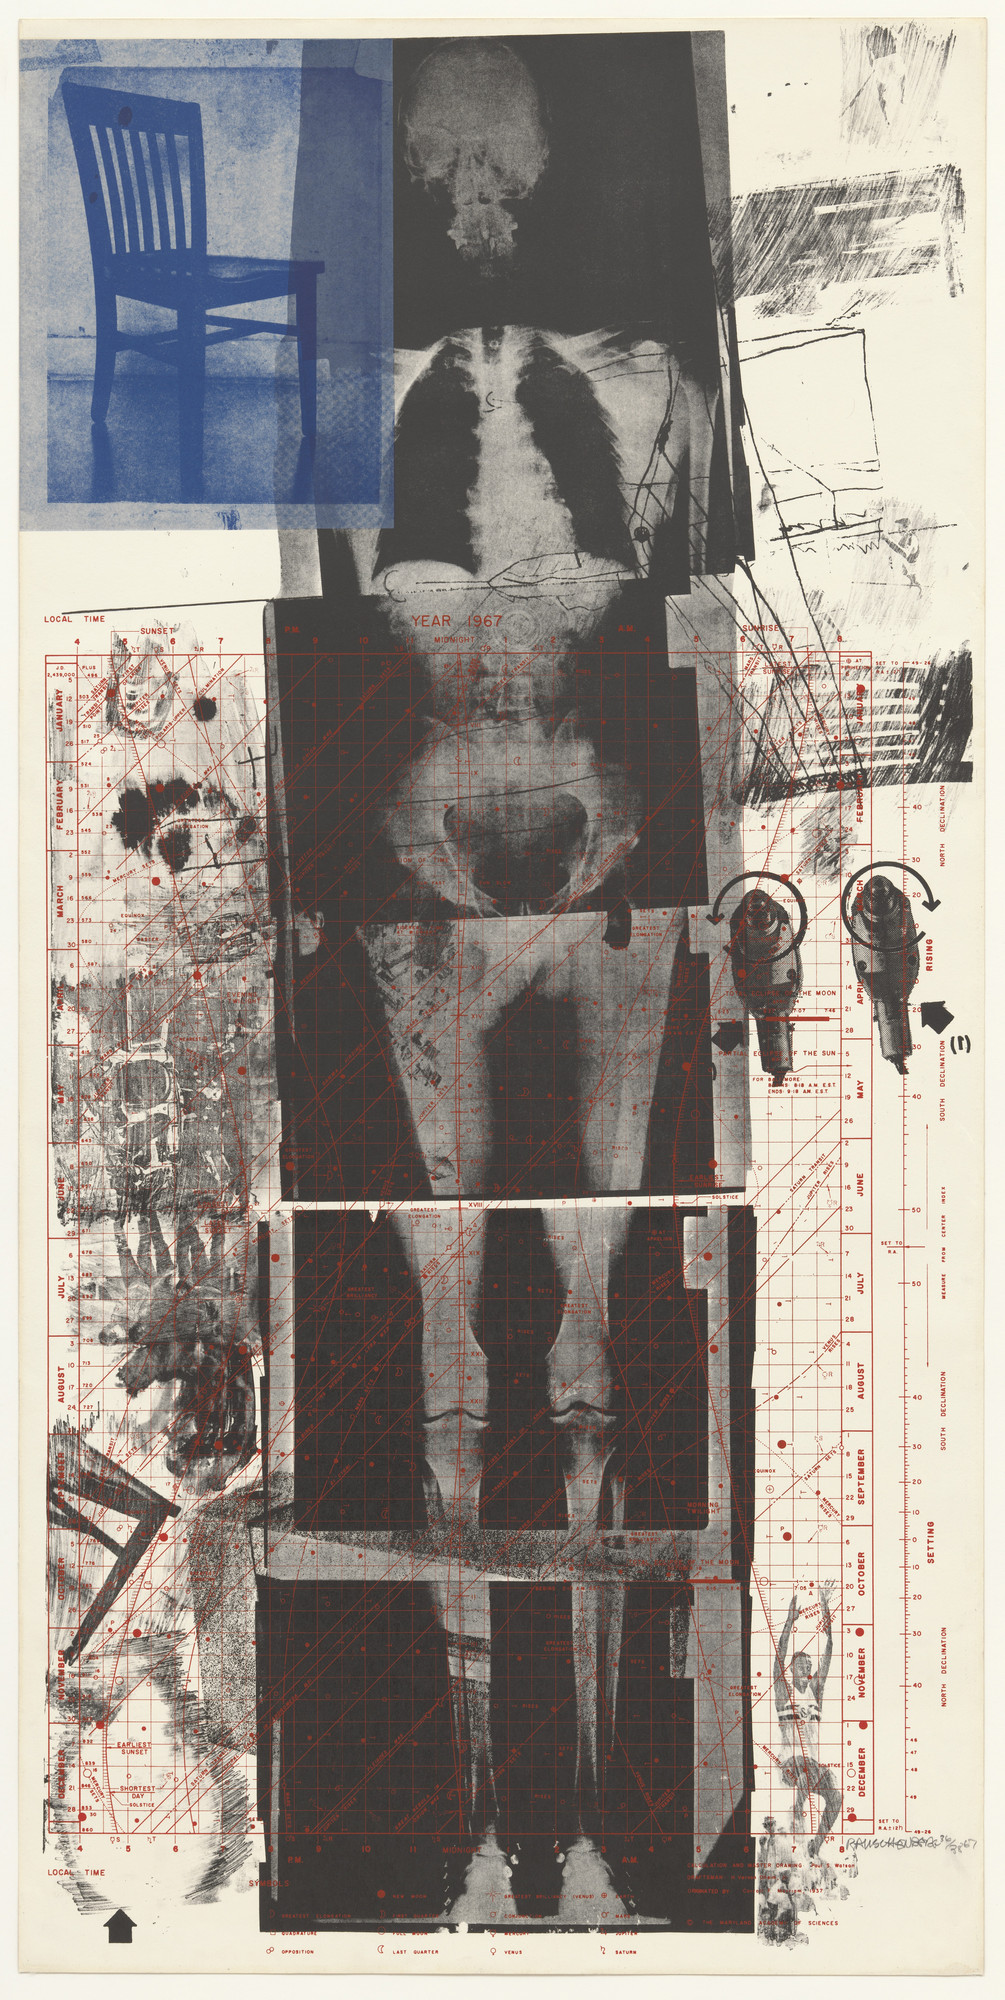 Robert Rauschenberg. Booster from Booster and 7 Studies. 1967